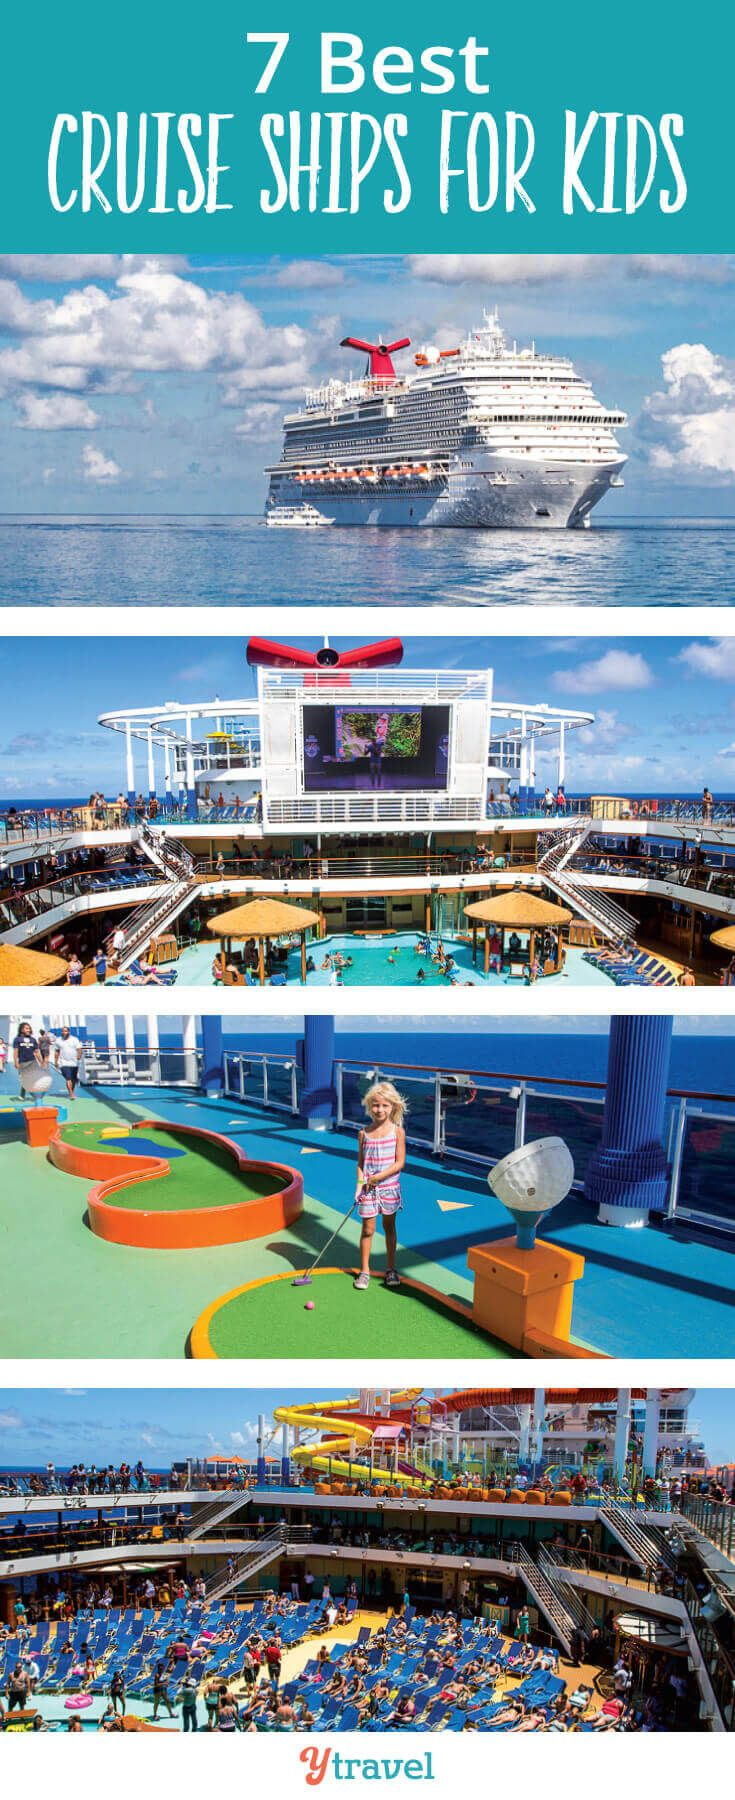 7 Best Cruise Ships for Kids | Family Travel | Best cruise